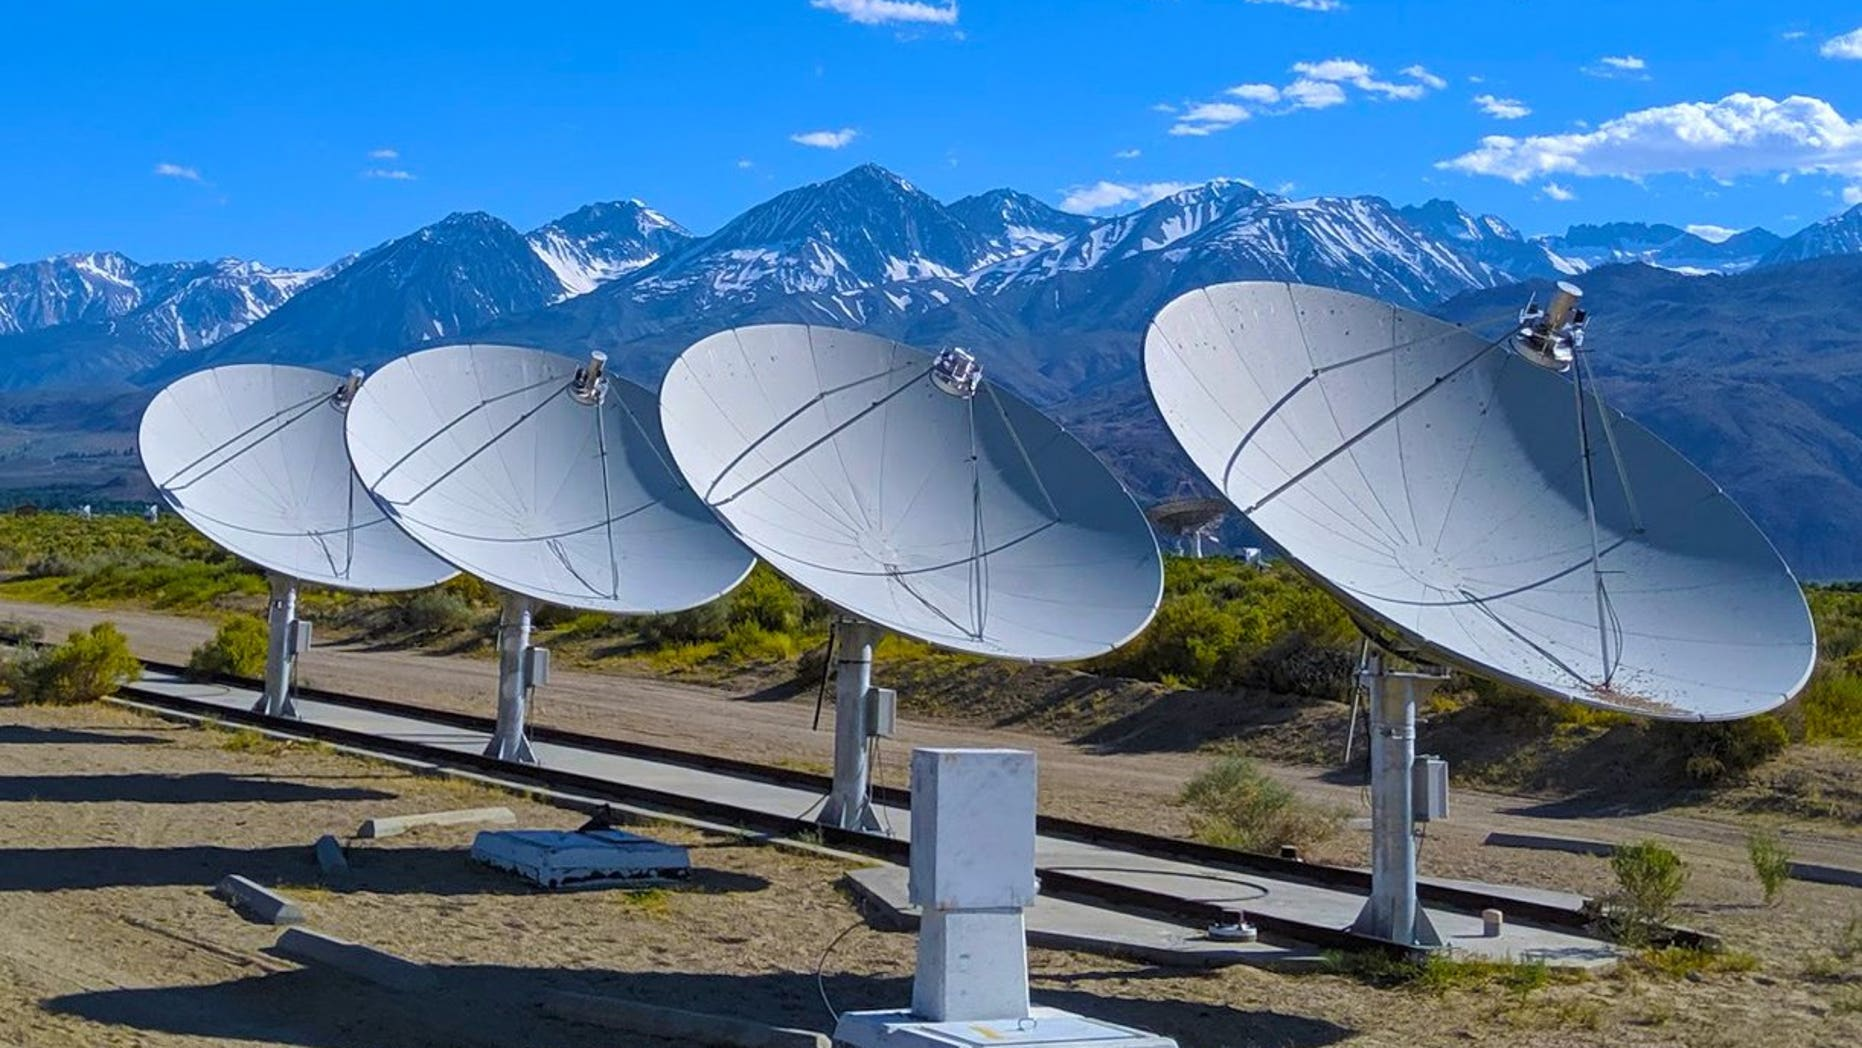 The Owens Valley Radio Observatory is located in the Sierra Nevada mountains of California.